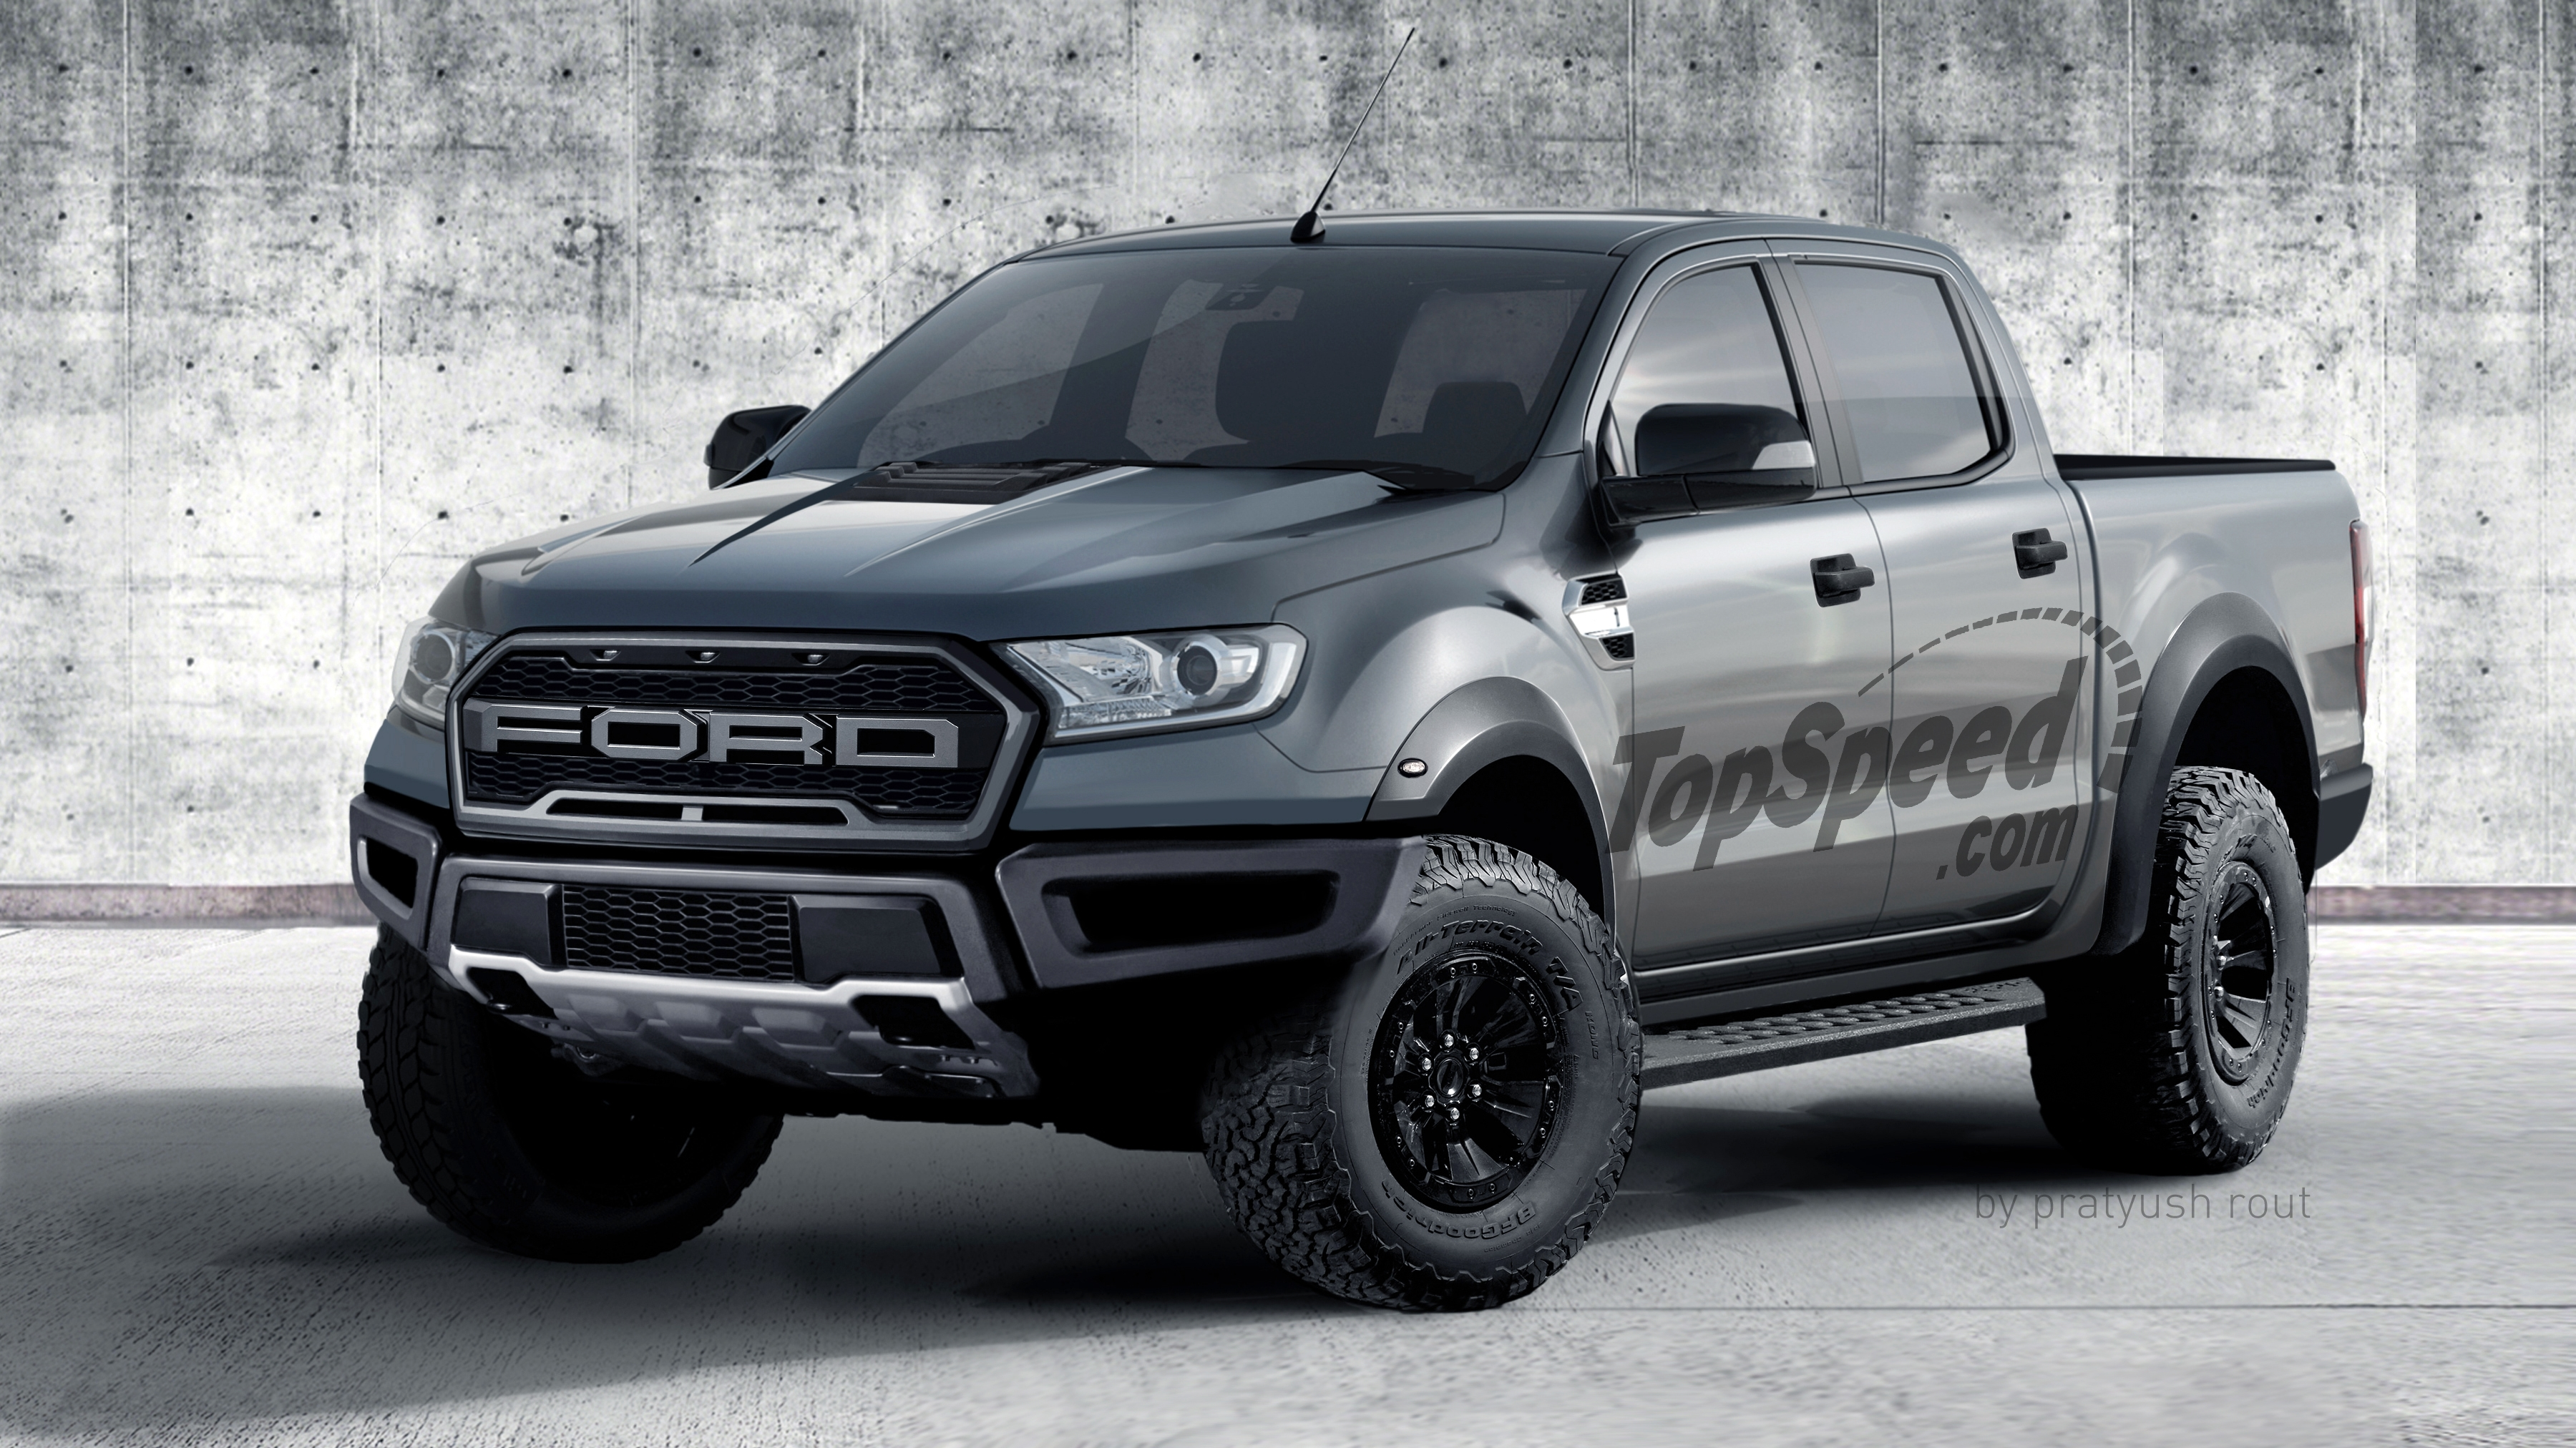 2019 ford ranger raptor review gallery top speed. Black Bedroom Furniture Sets. Home Design Ideas